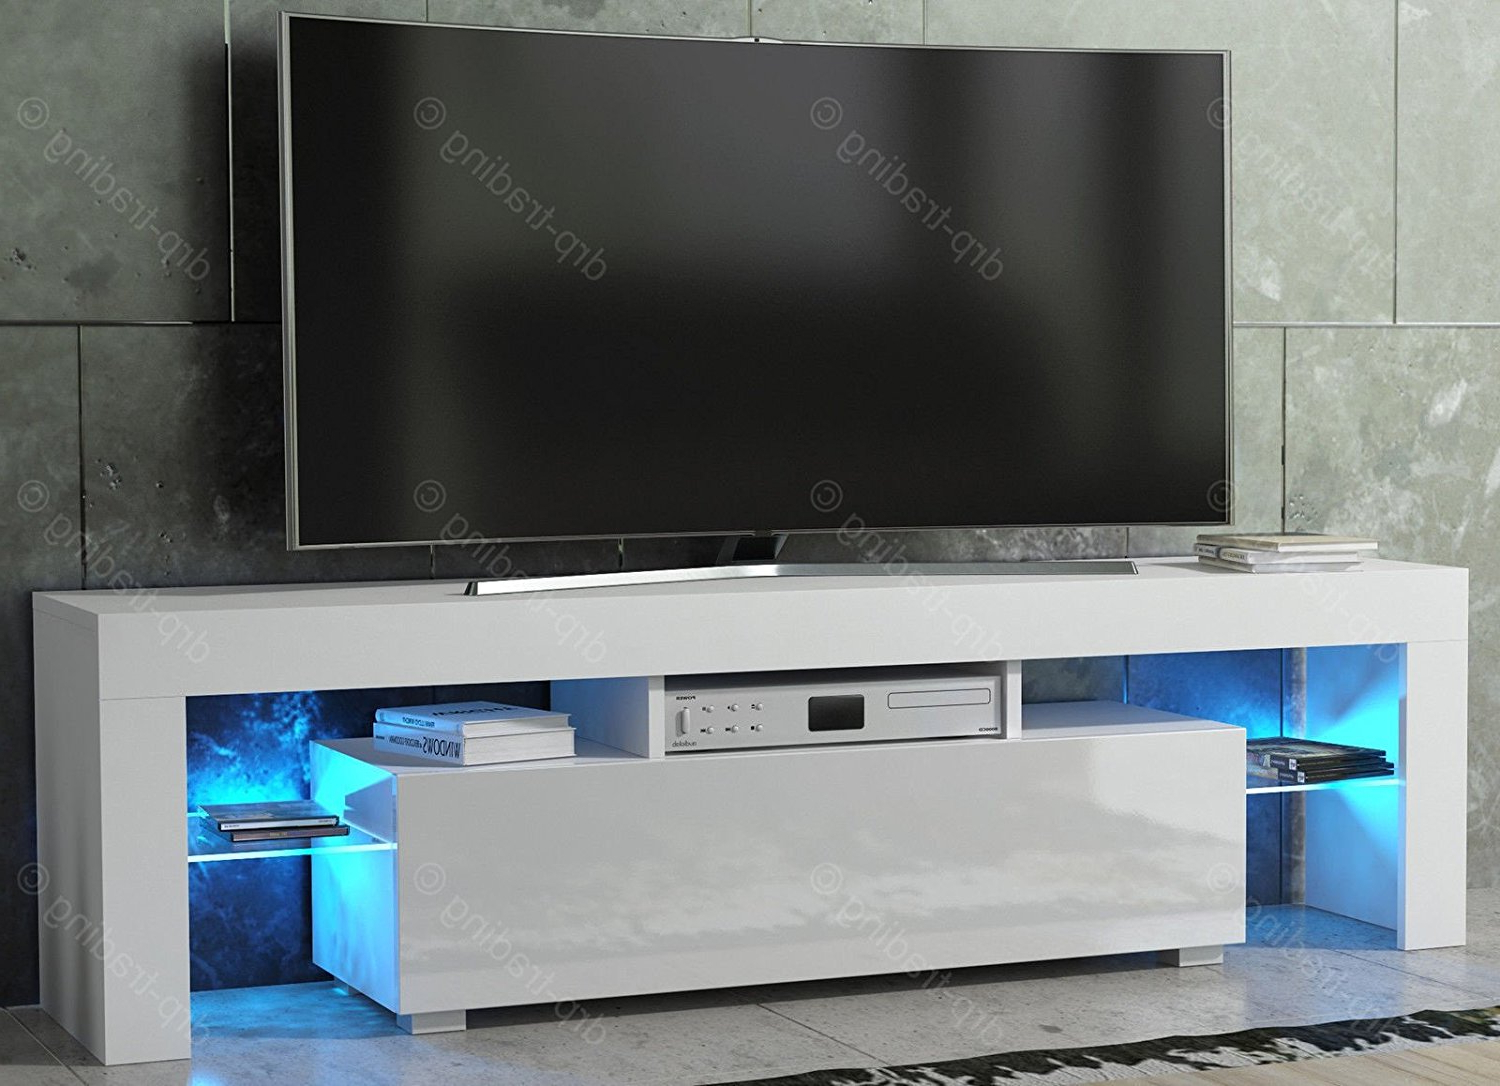 High Gloss White Tv Stands Within Most Popular Hot Sale !!! Modern Popular White High Gloss Lcd Mdf Tv Stand – Buy (View 5 of 20)